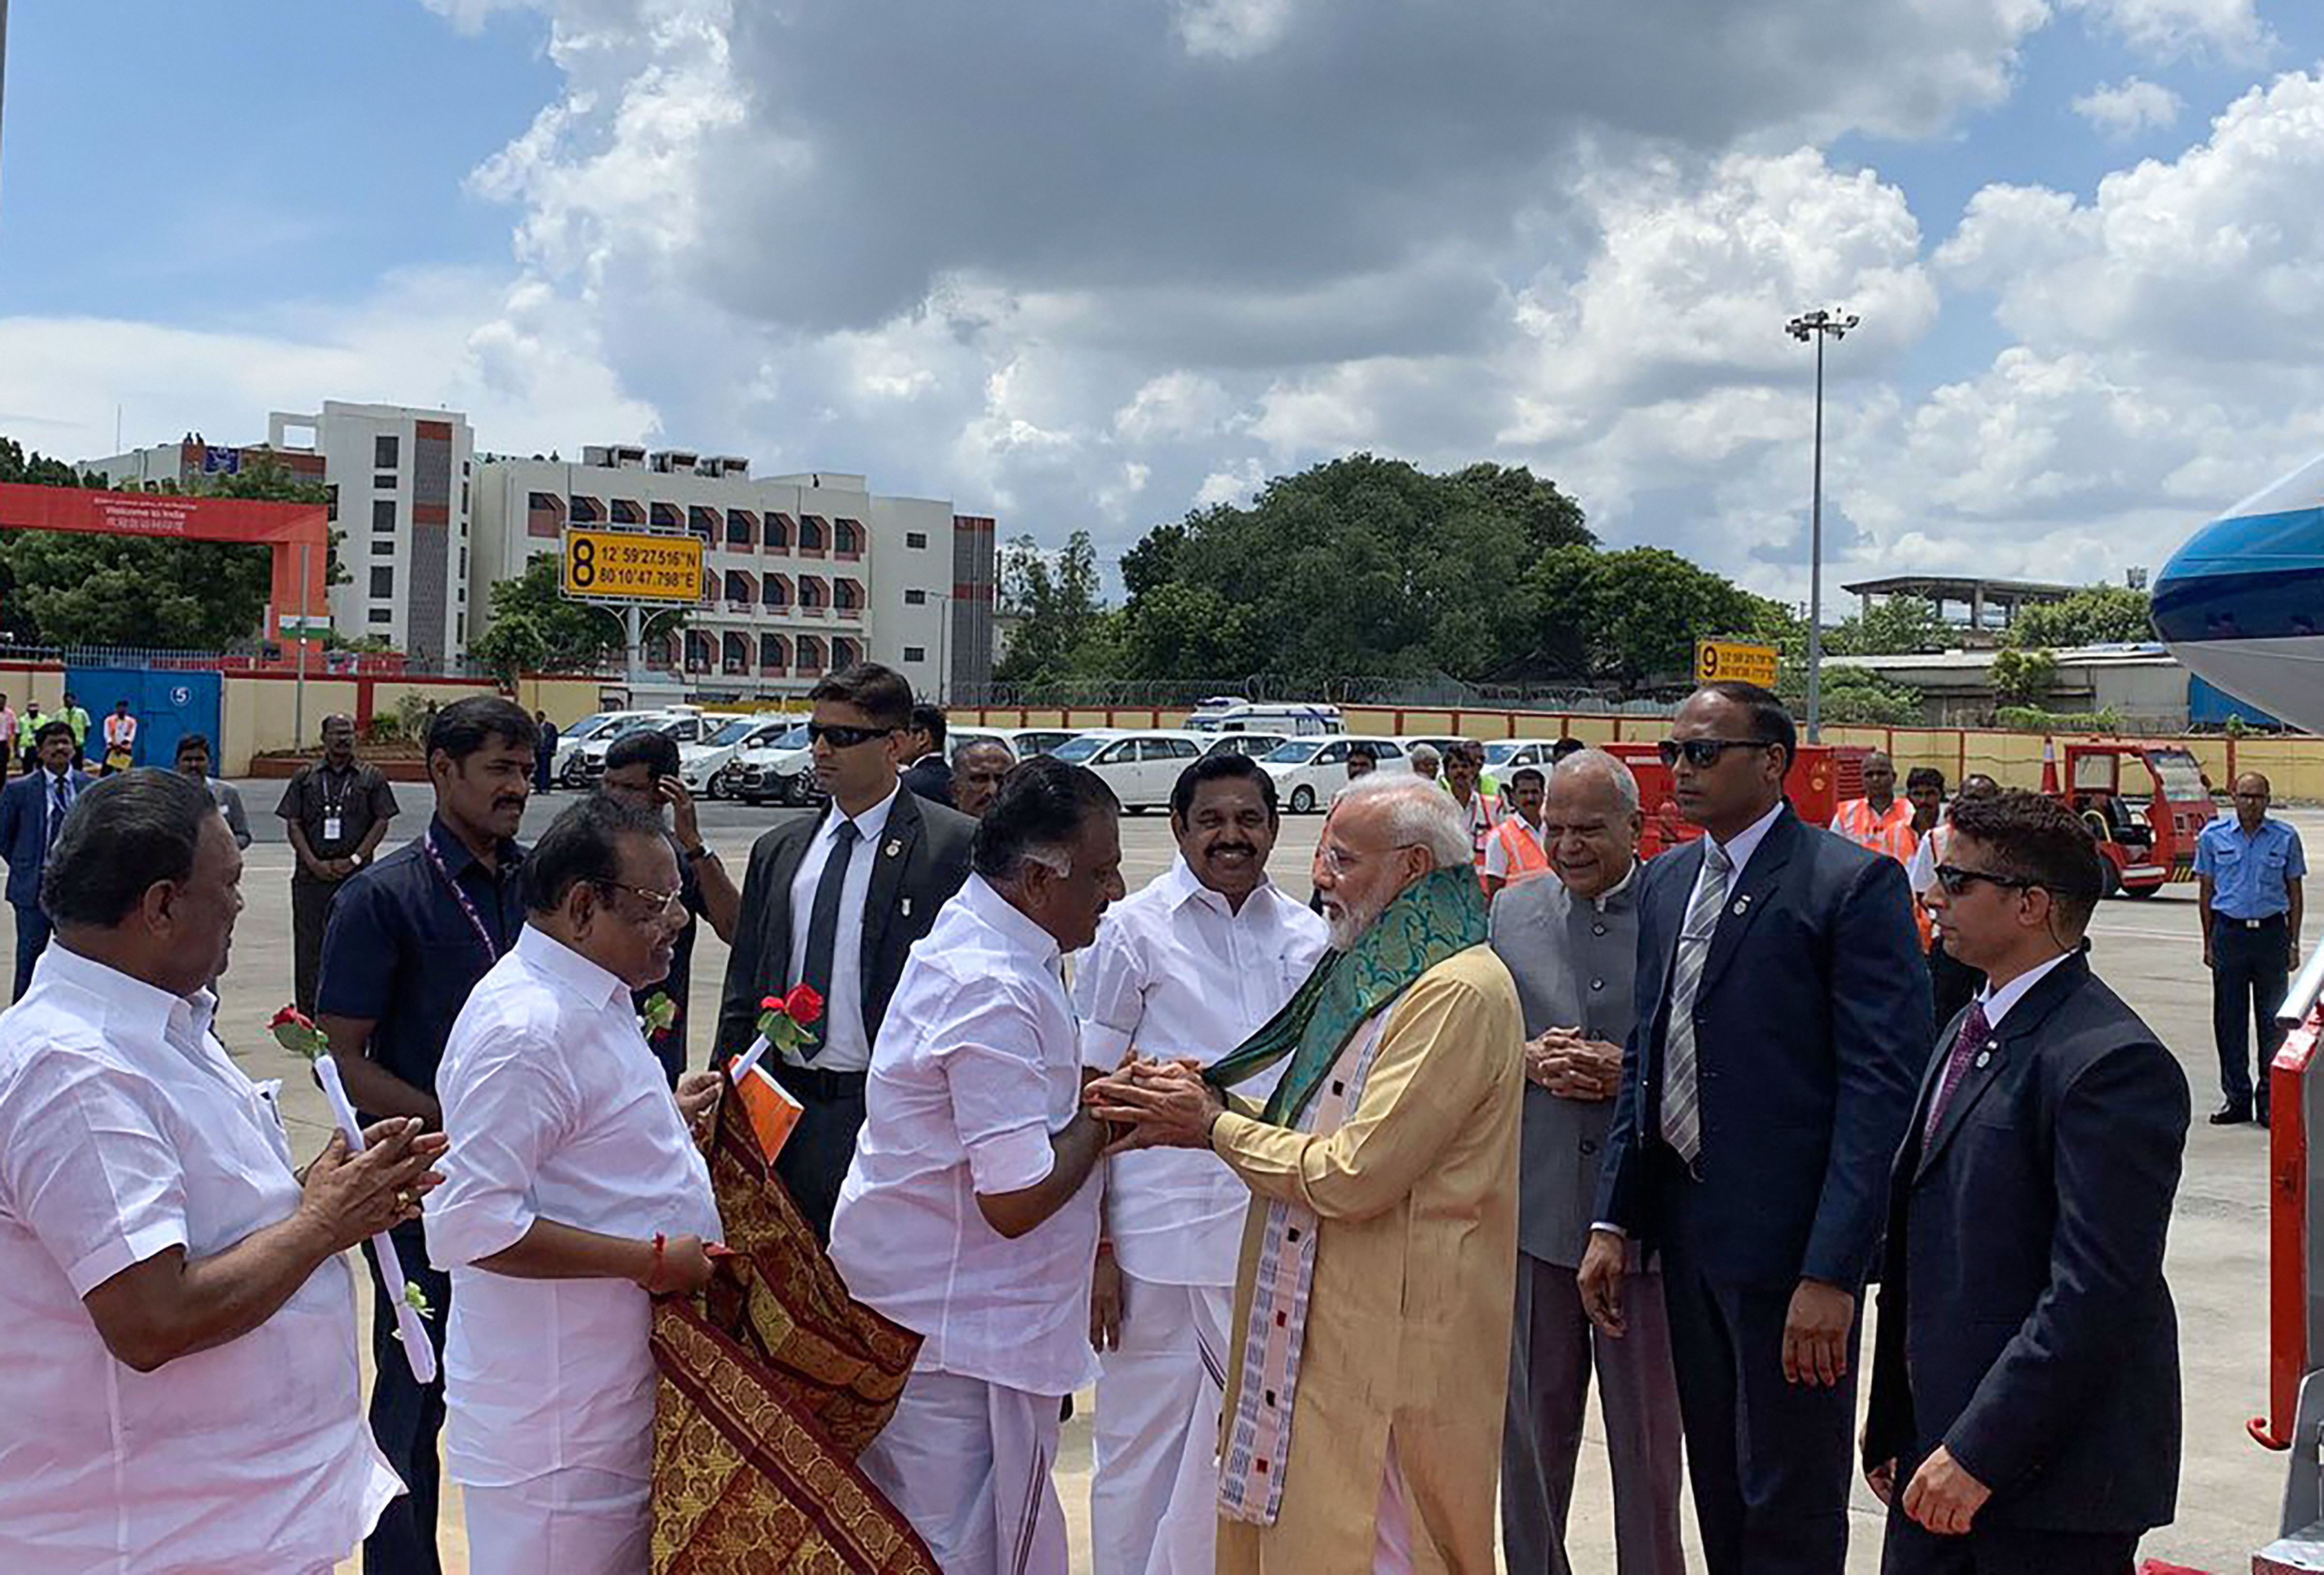 Prime Minister Narendra Modi is welcomed by Tamil Nadu deputy chief minister O. Panneerselvam as chief minister K. Palaniswami looks on, on his arrival in Chennai, Friday, October 11, 2019